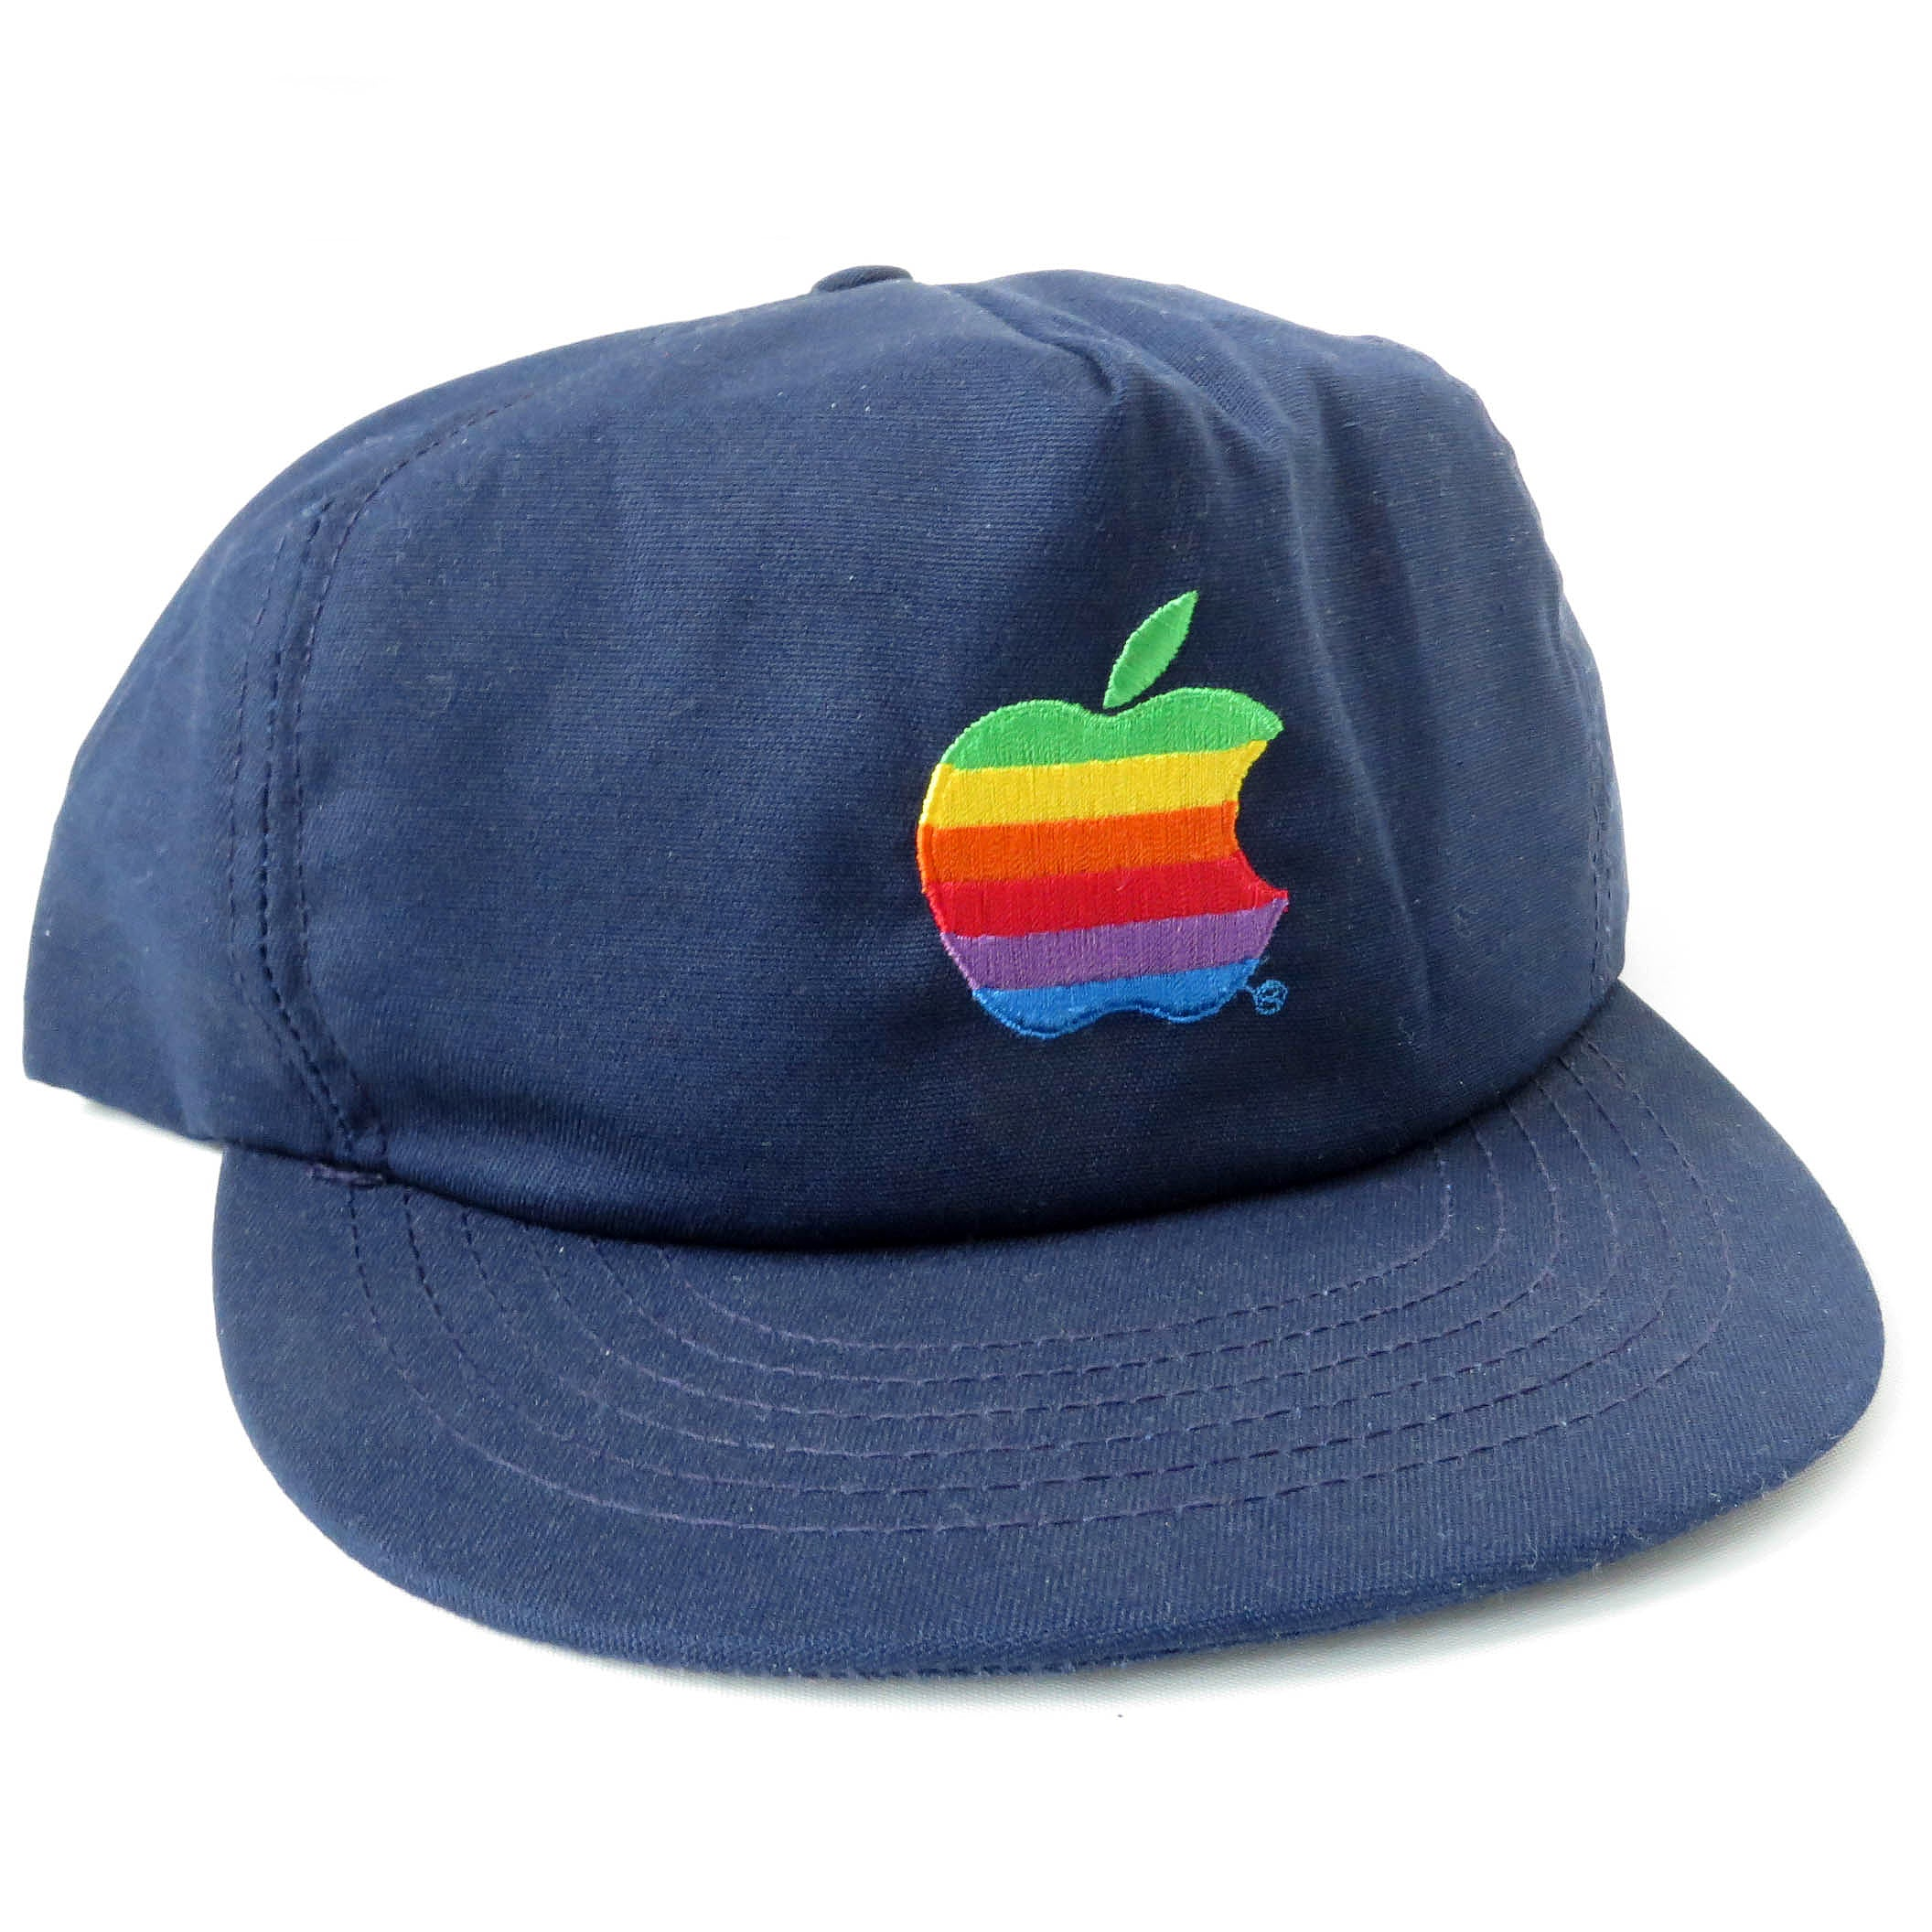 Vintage Apple Computer Snapback Hat